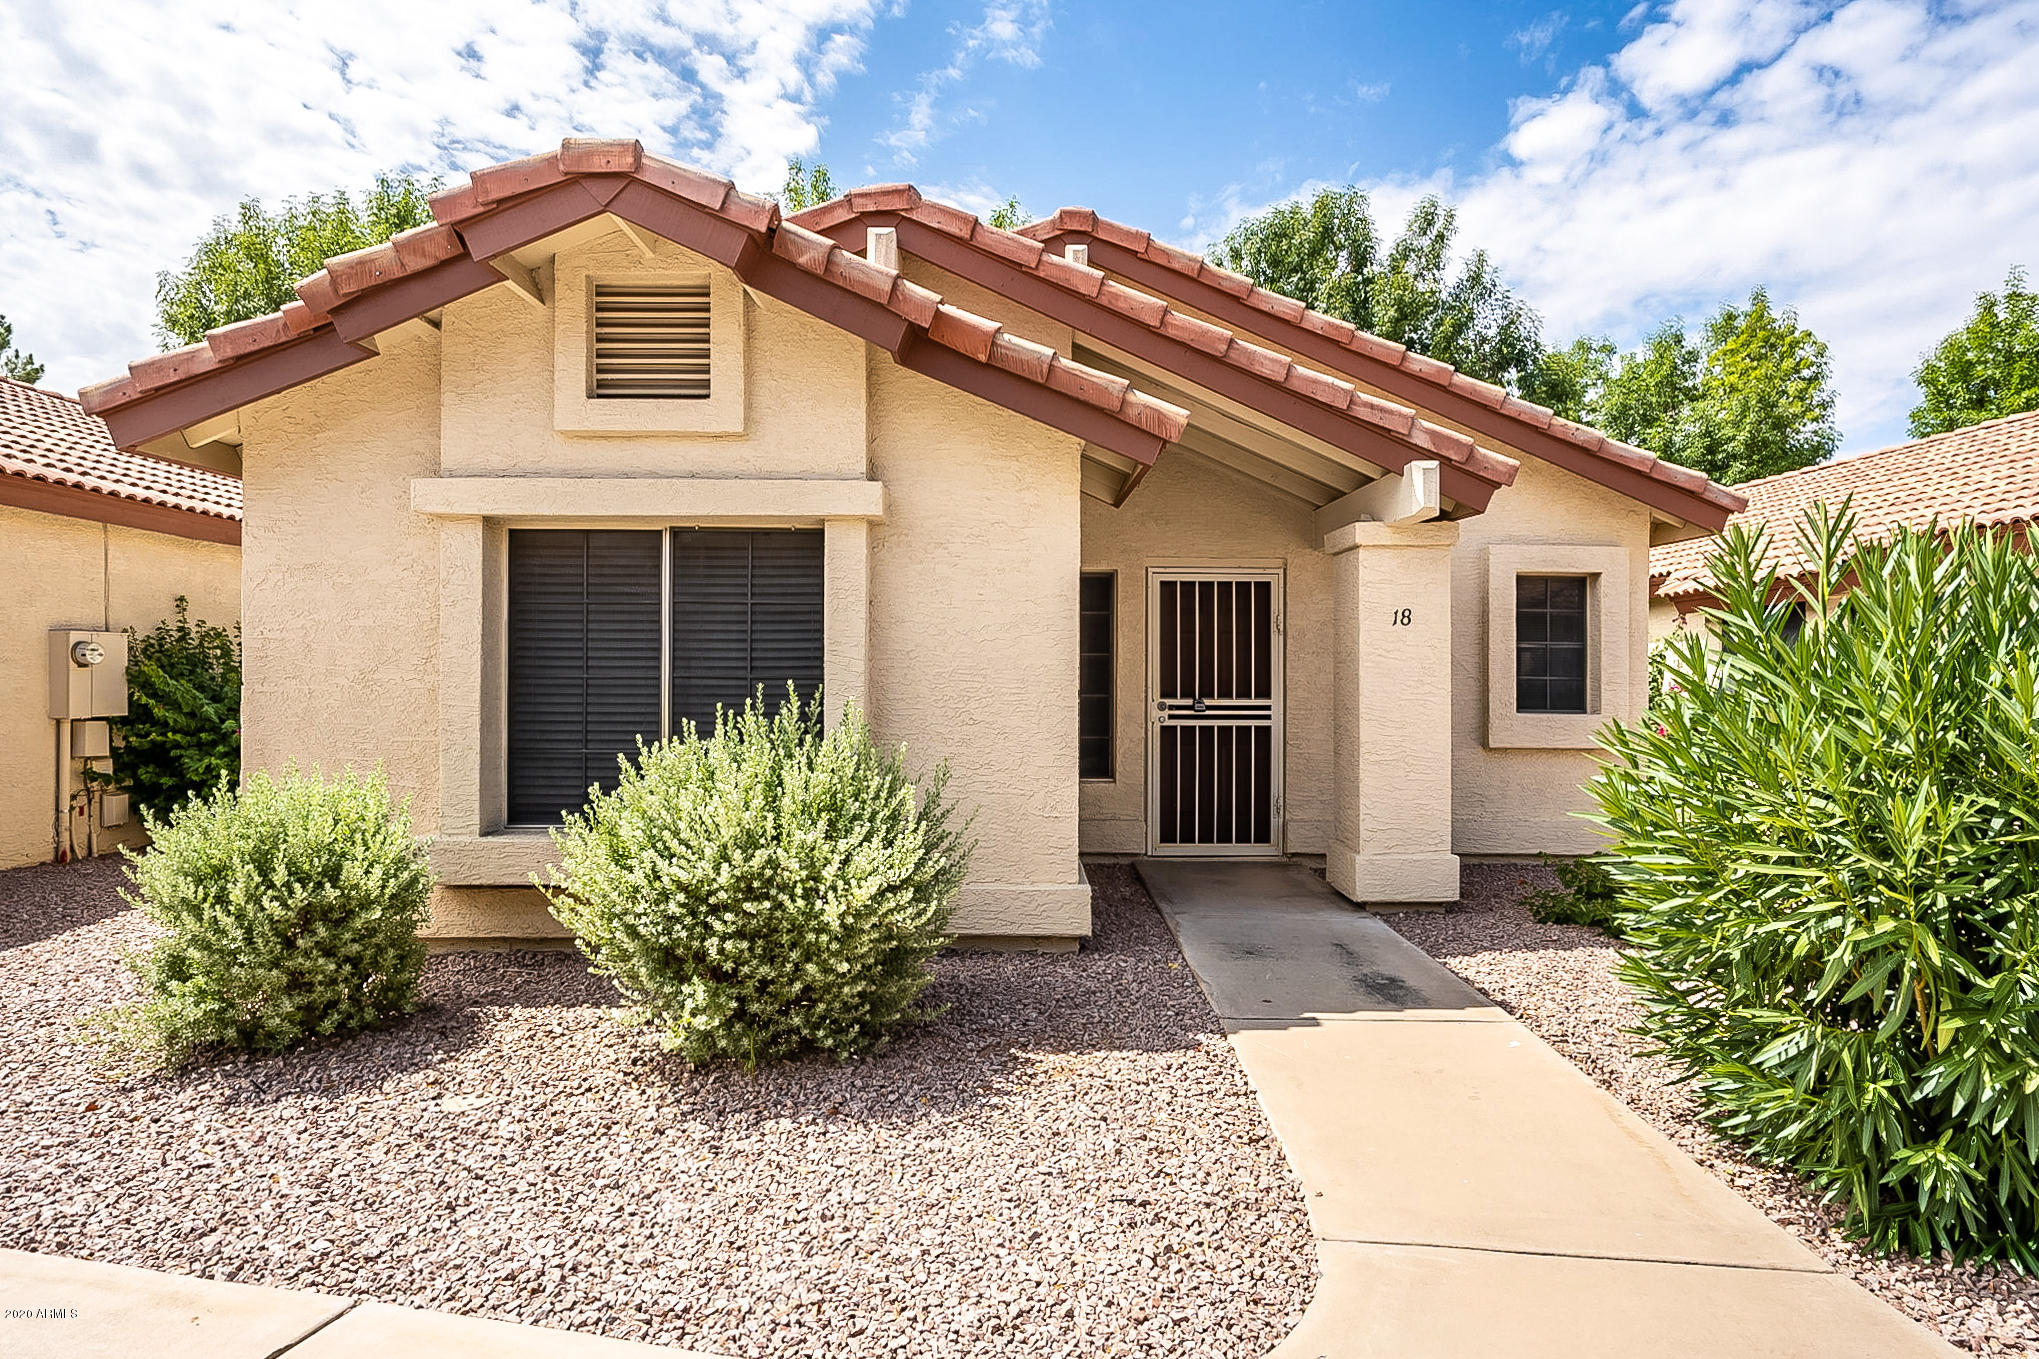 Photo of 1120 N VAL VISTA Drive #18, Gilbert, AZ 85234